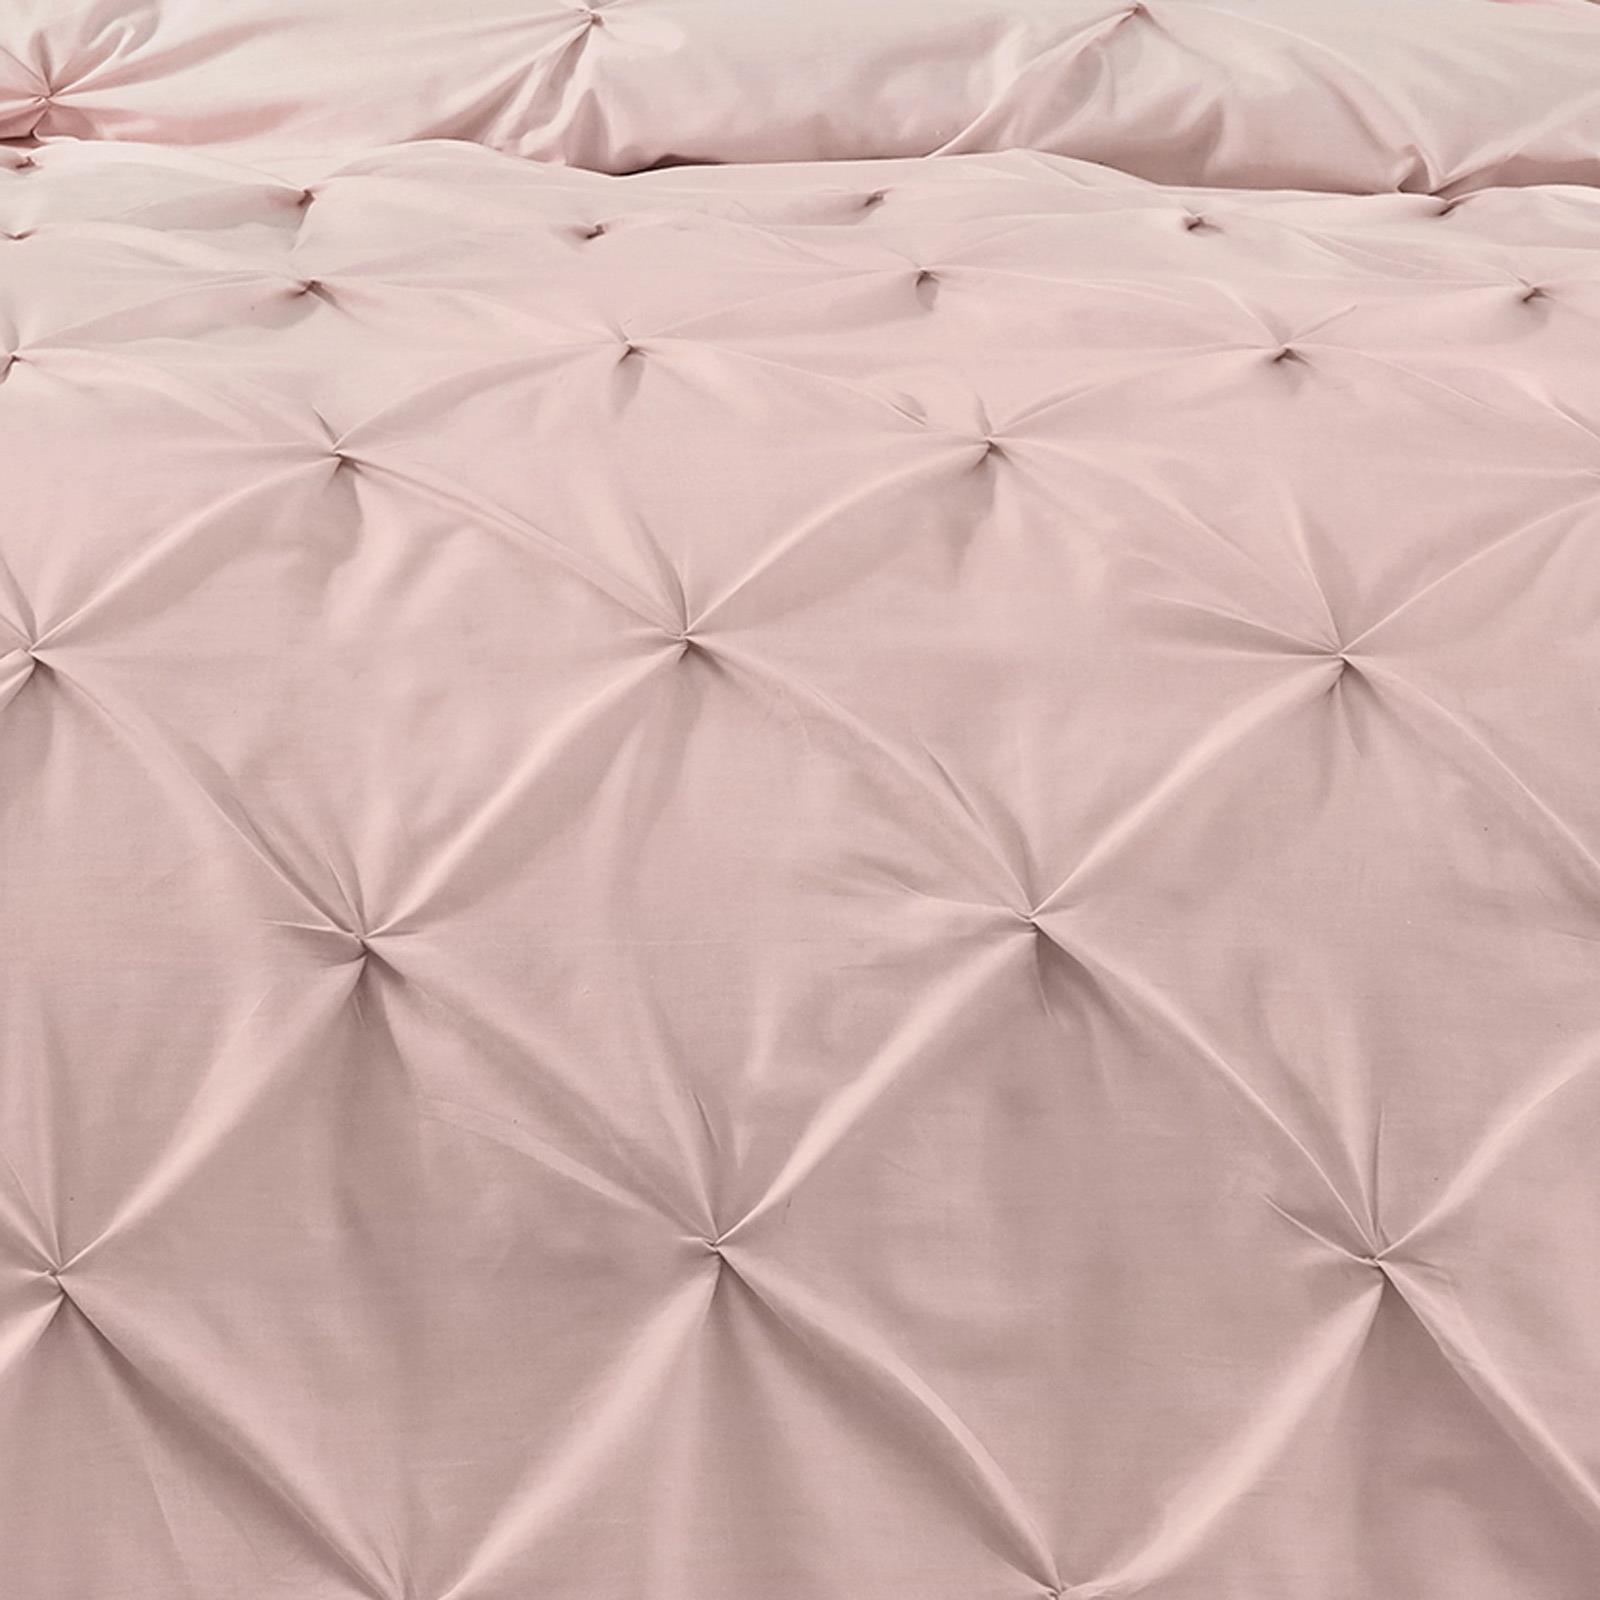 Blush-Duvet-Covers-Ruched-Pin-Tuck-Stitched-Plain-Pink-Quilt-Cover-Bedding-Sets thumbnail 18